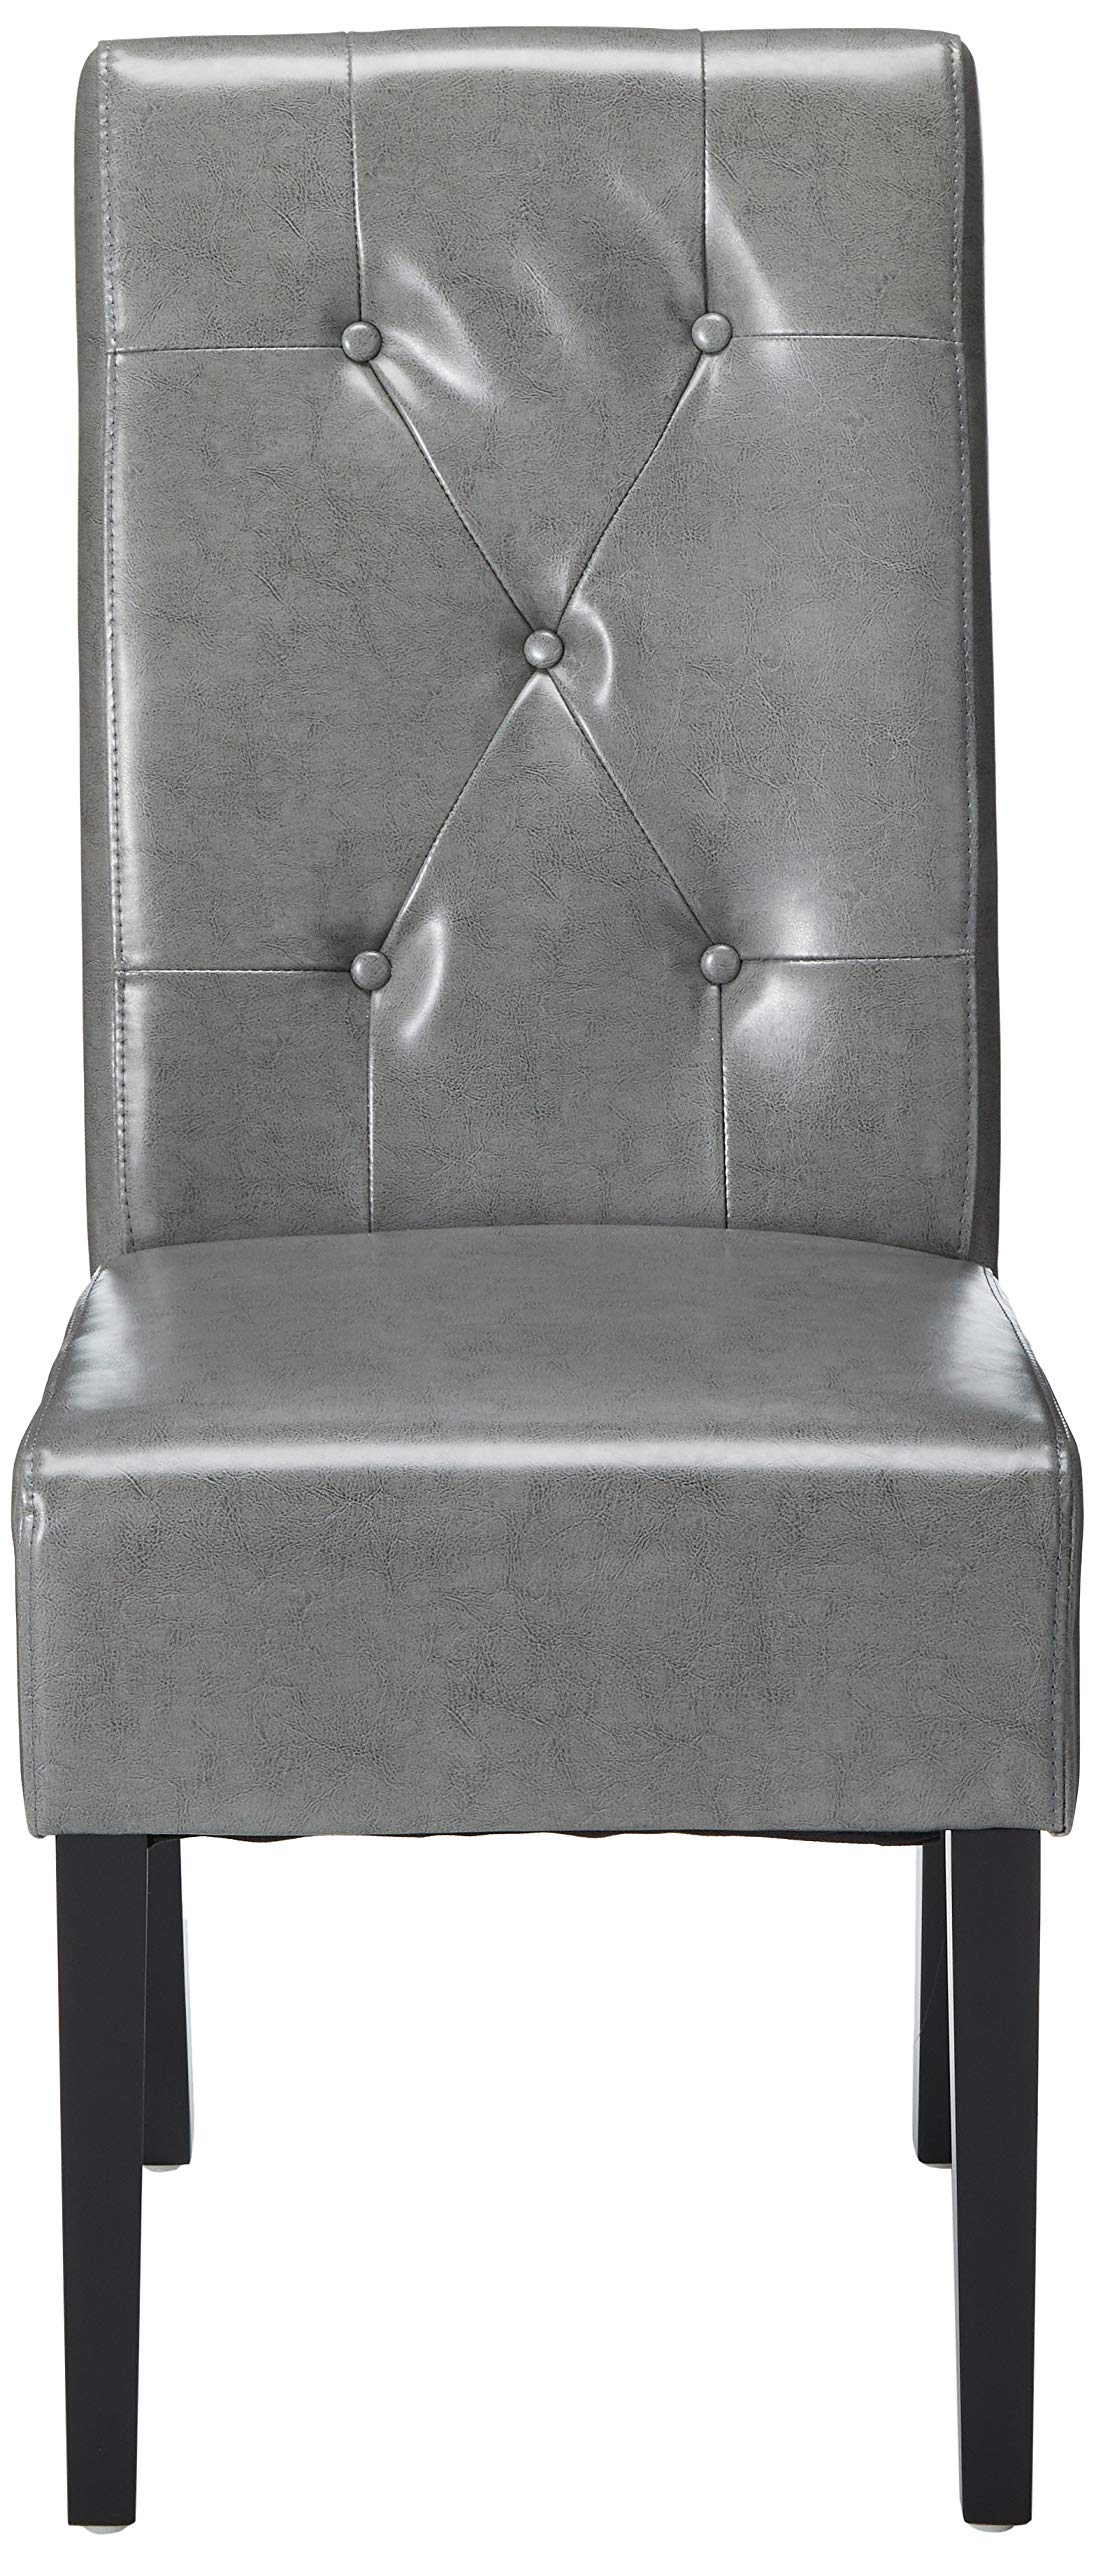 Christopher Knight Home 214519 Alexander Grey Leather Dining Chairs (Set of 2), by Christopher Knight Home (Image #2)